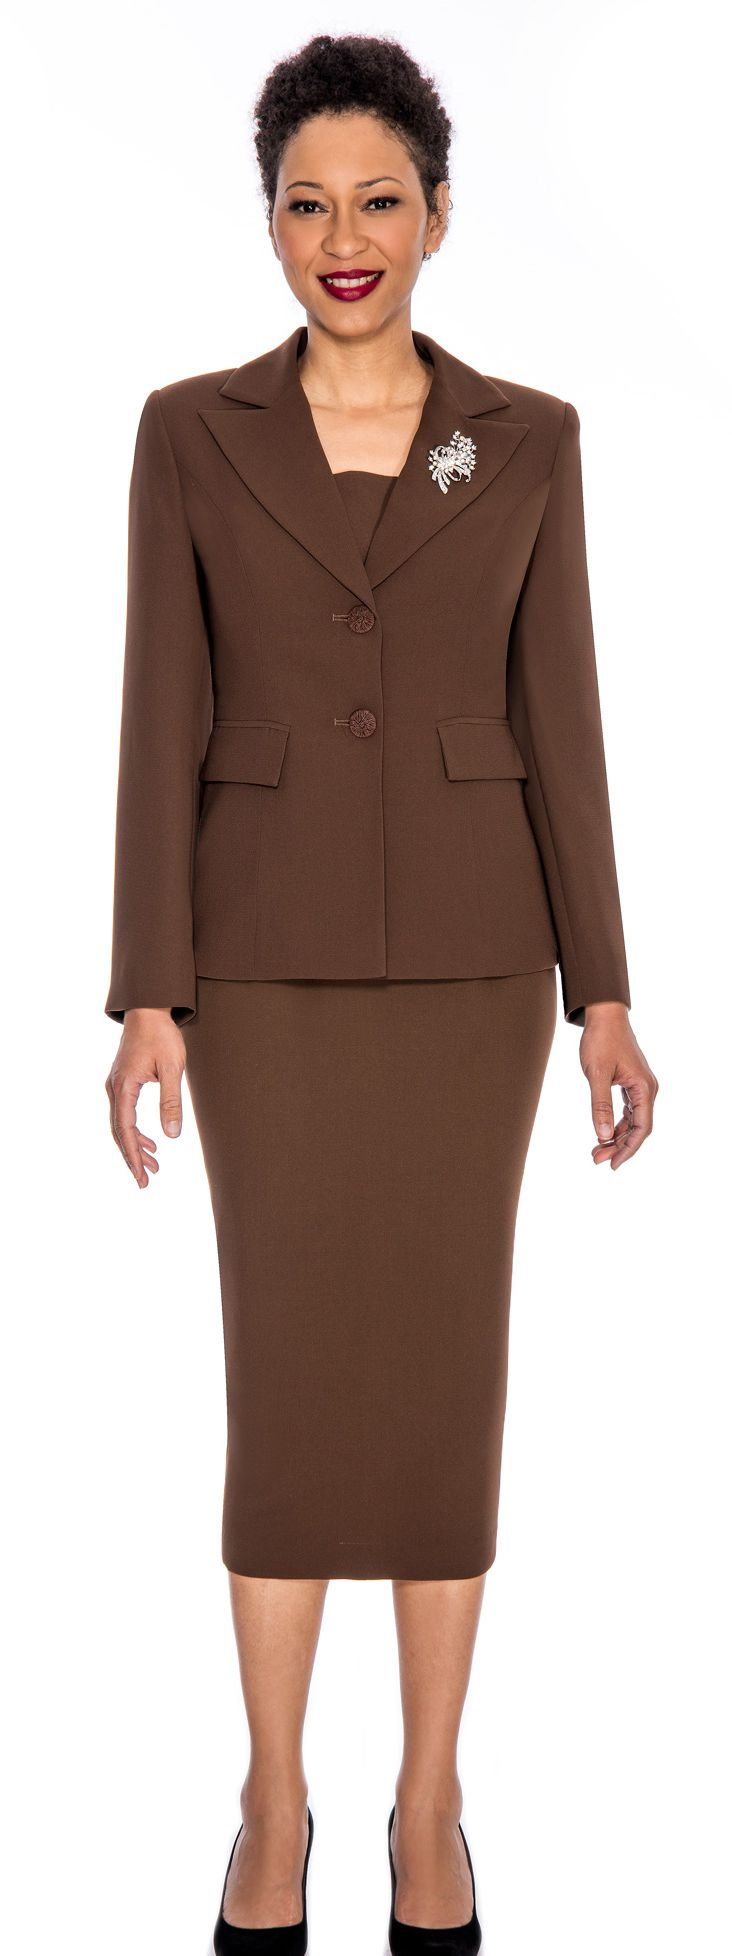 Giovanna Church Suit 0710-Chocolate - Church Suits For Less